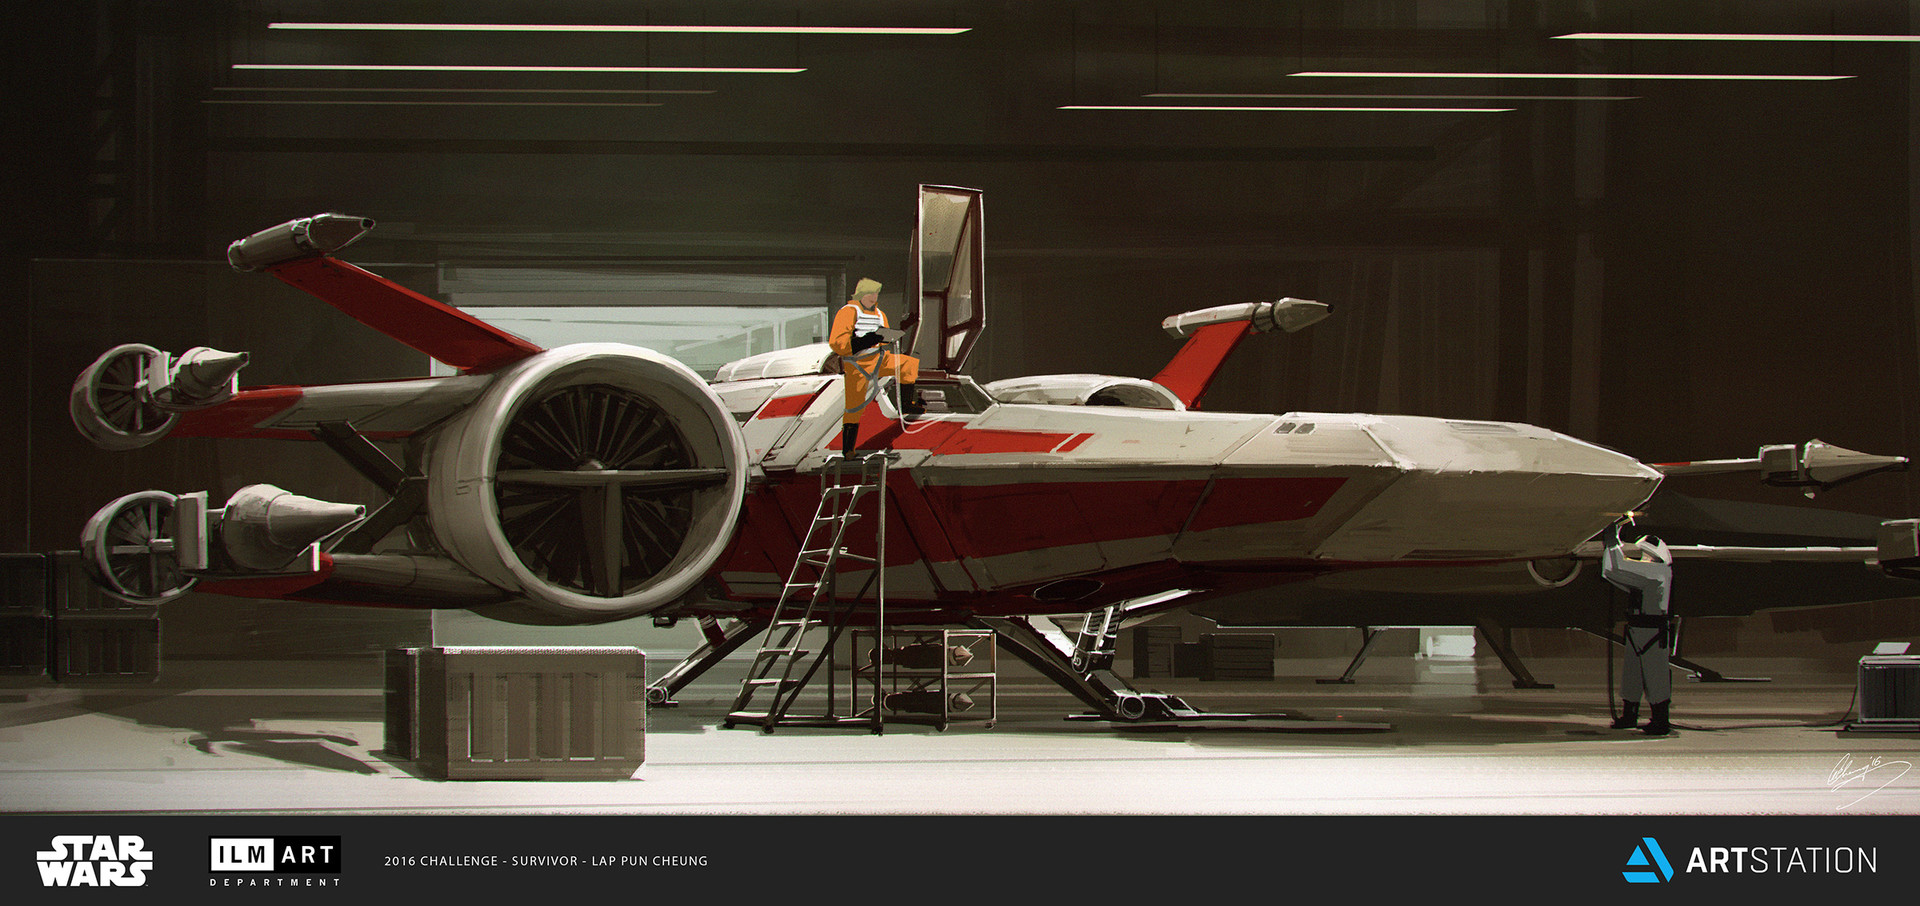 ILM Art Department Challenge - The Ride - T-68 Prototype